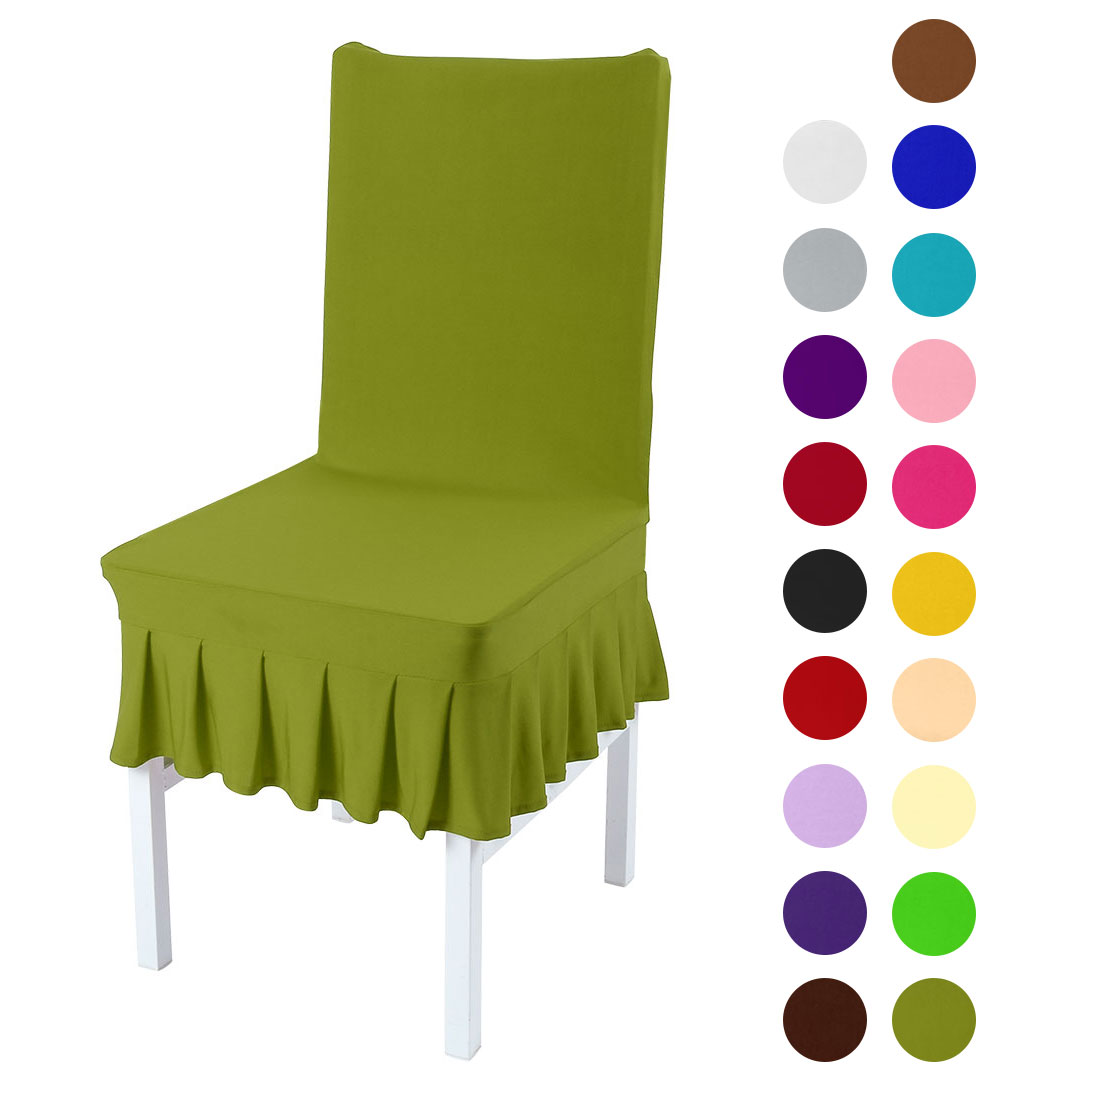 Stretchy Spandex Ruffled Skirt Short Dining Room Chair Covers Washable Removable Seats Protector Slipcovers